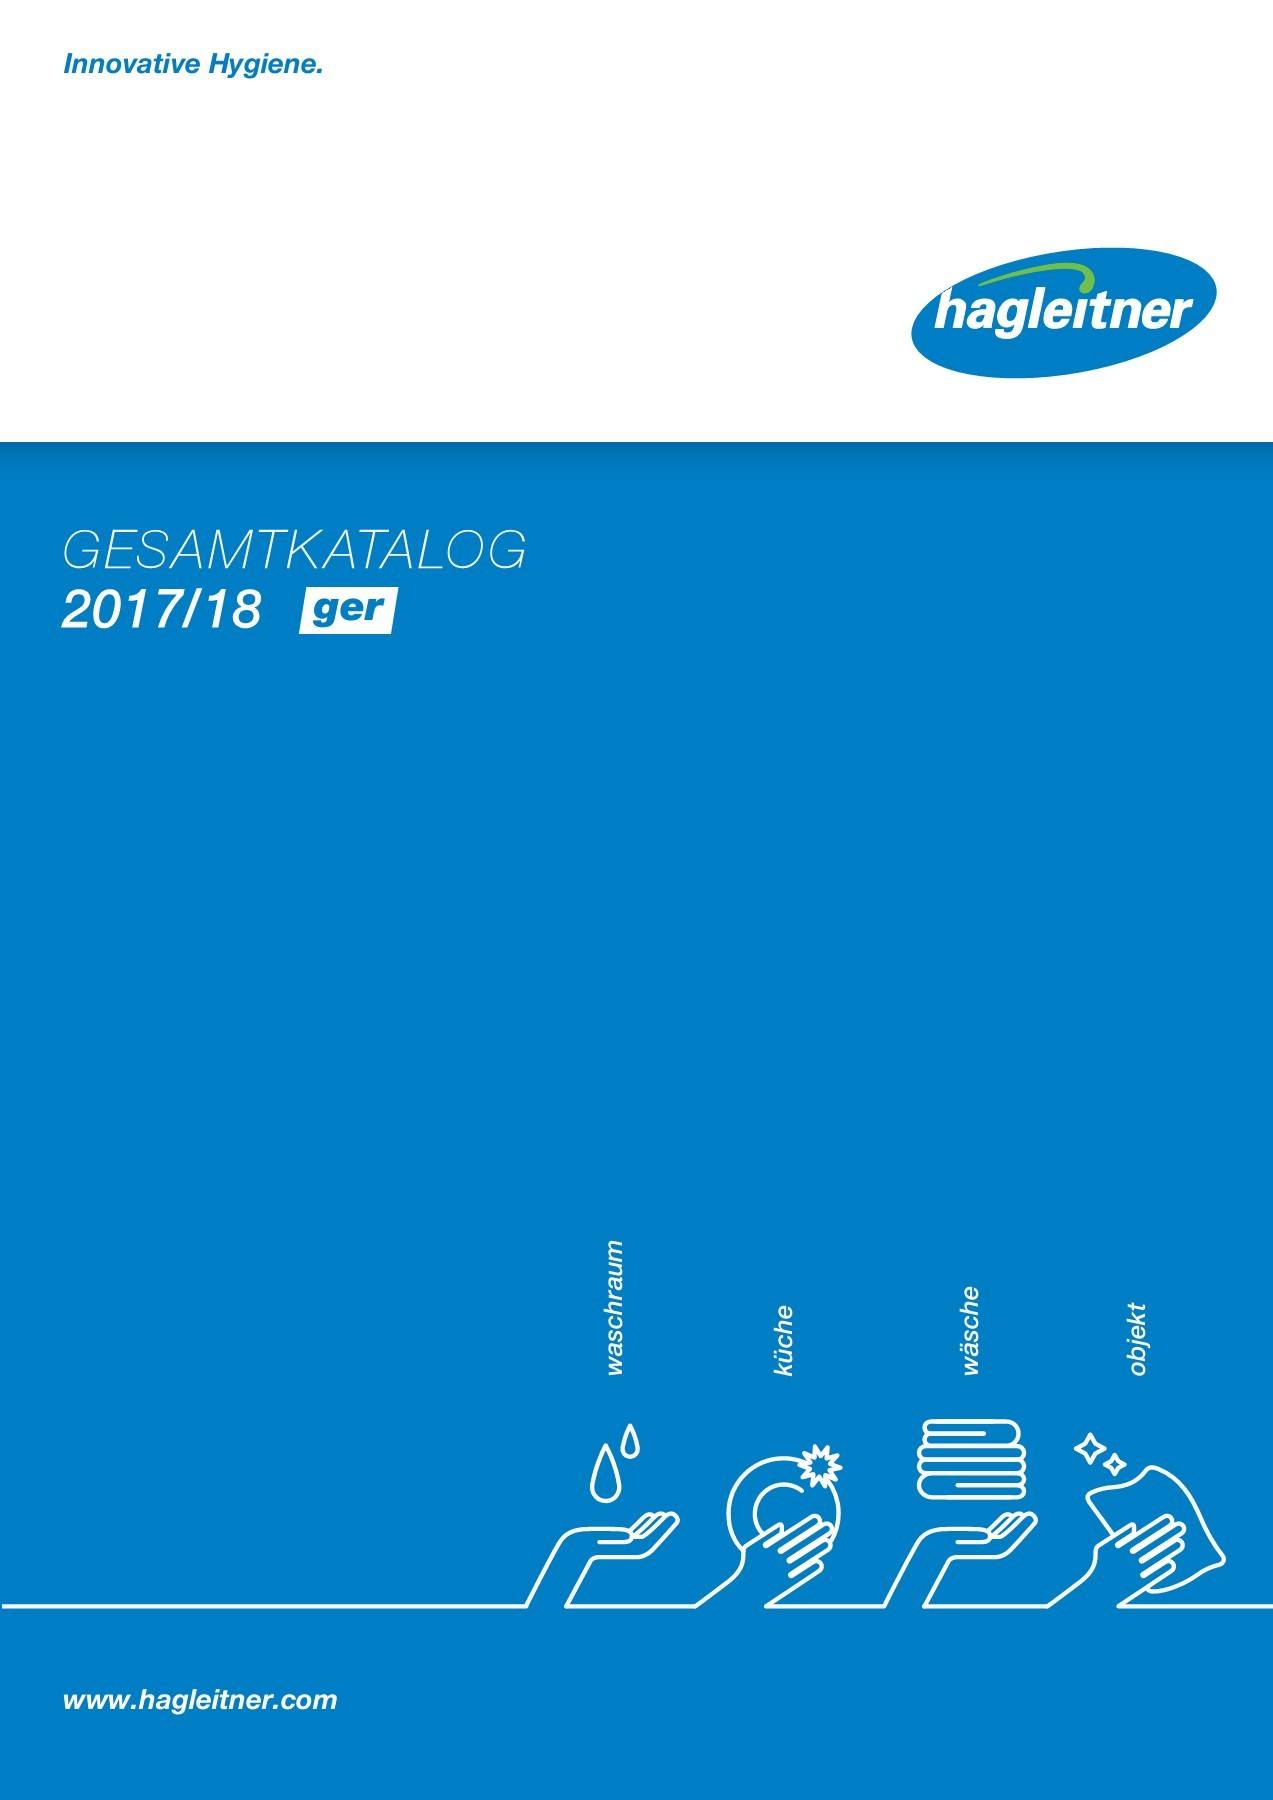 Küchen Aktuell Service Hotline Katalog2017 Ger Pages 1 50 Text Version Fliphtml5